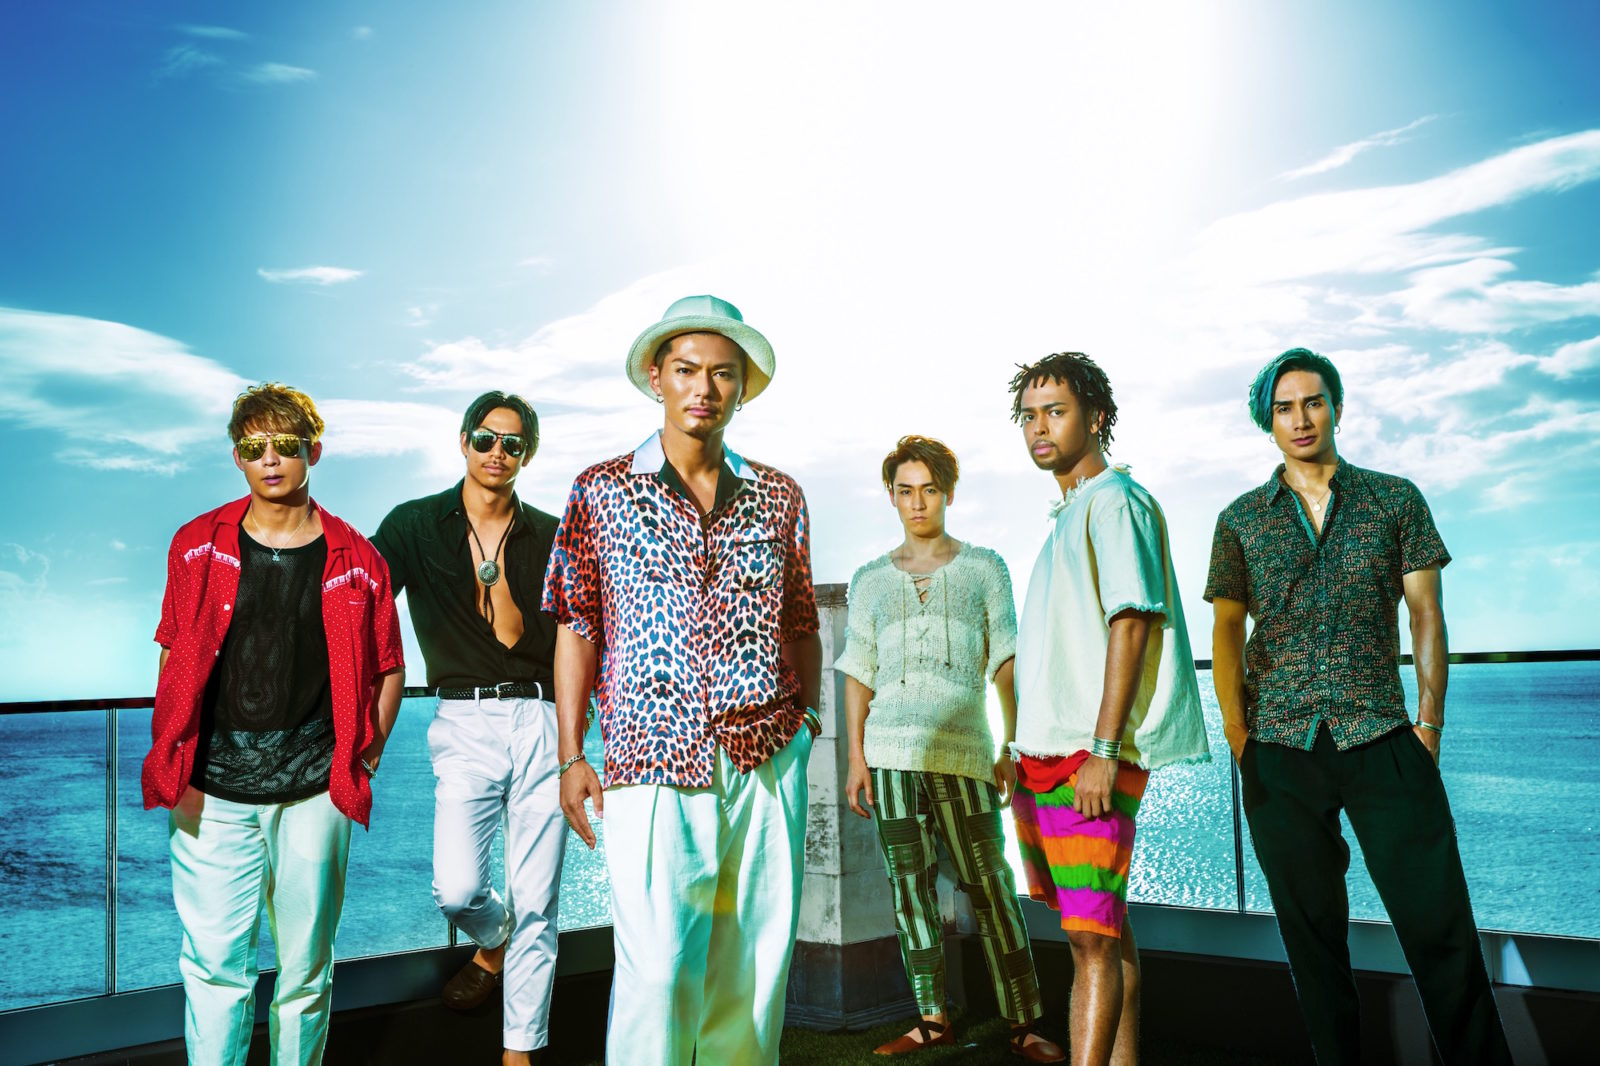 EXILE THE SECONDのライブツアー最終公演に密着!「新しいエンターテインメントのスタイルが出来た」サムネイル画像